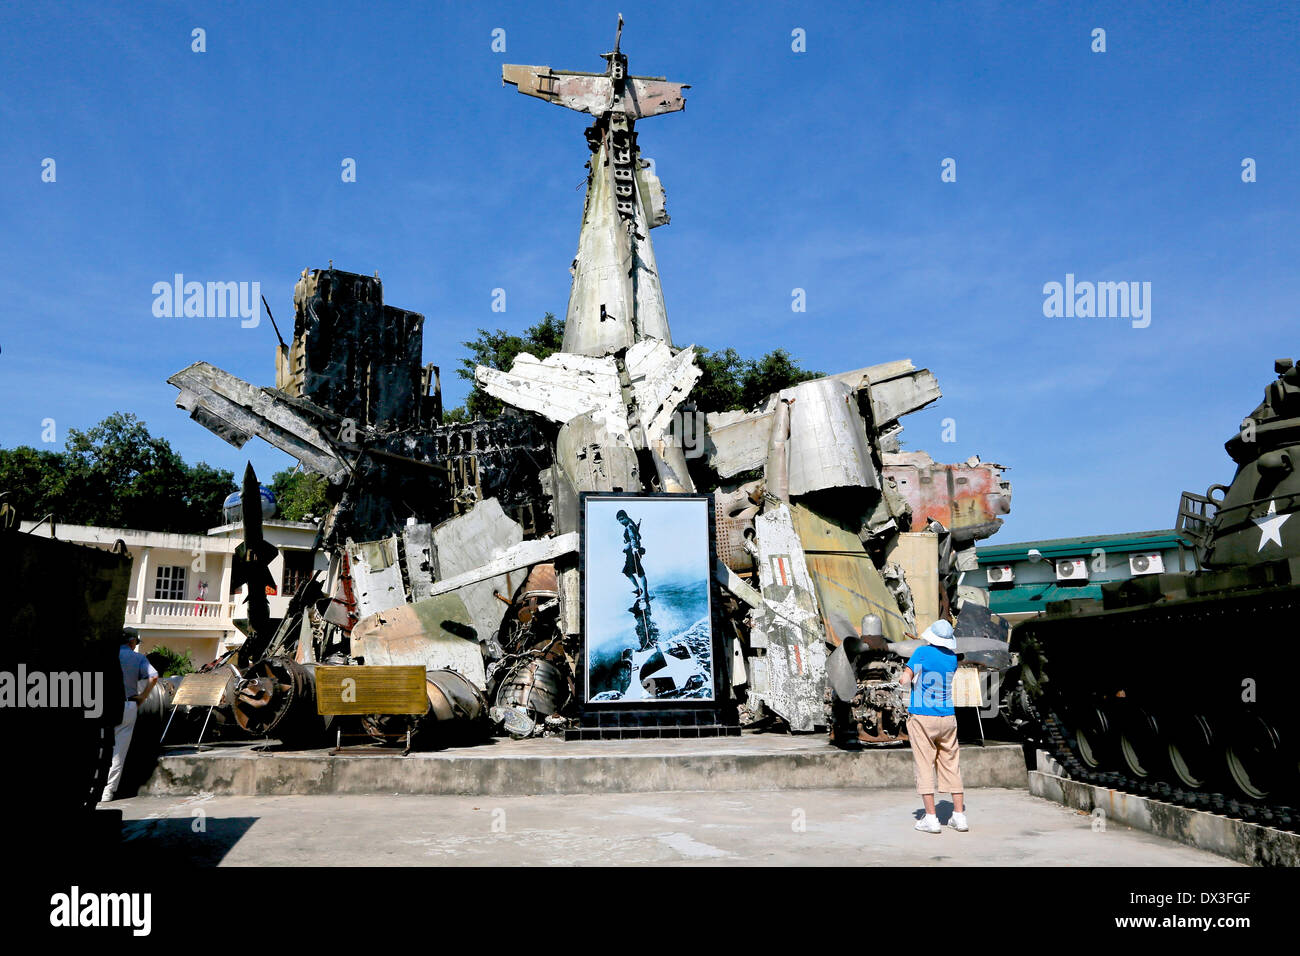 A Tourist looks at the wreckage of captured American planes at the Vietnam military history Museum, Vietnam, South East Asia - Stock Image